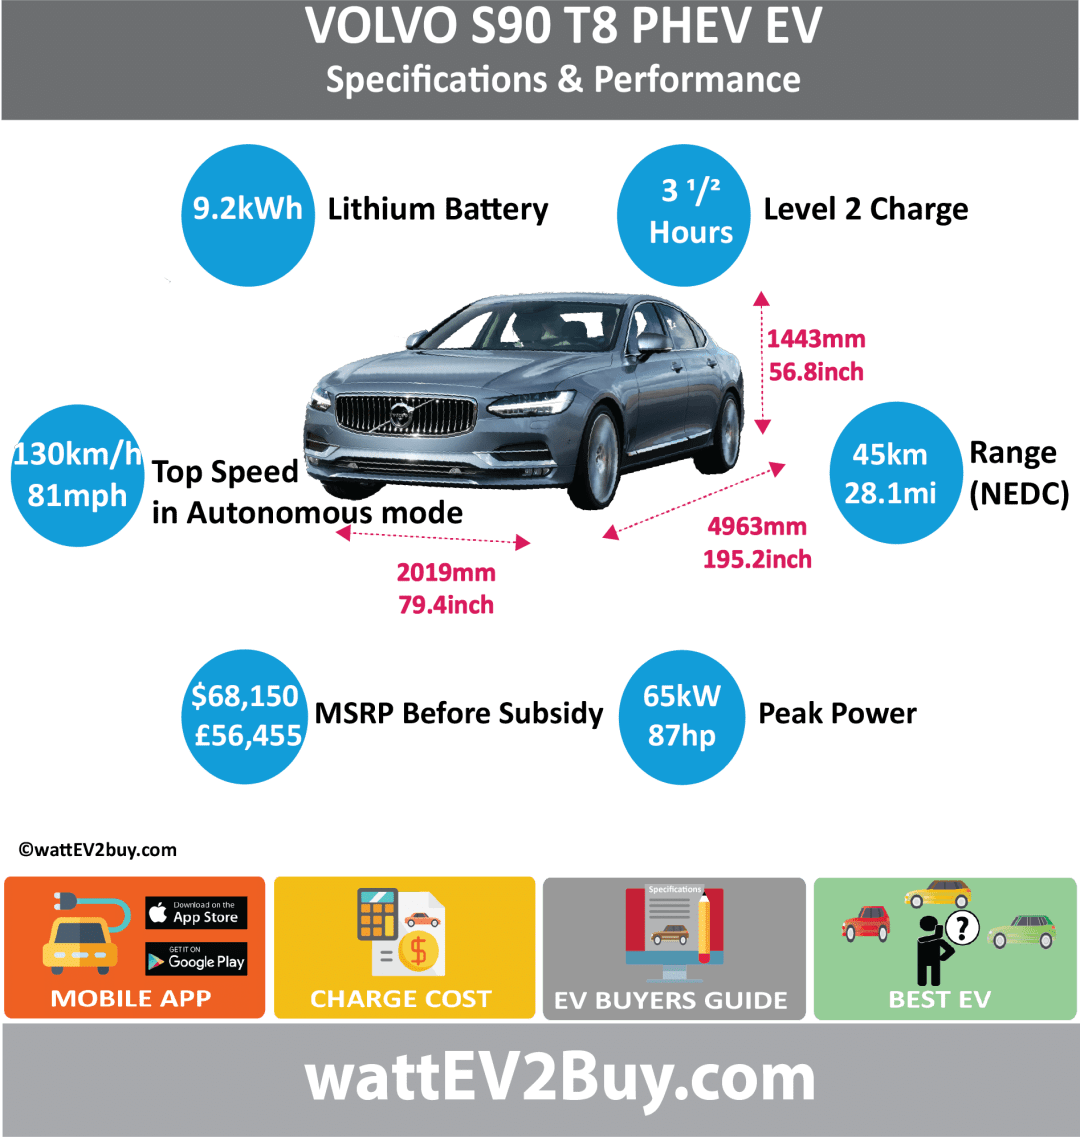 VOLVO S90 T8 PHEV specs wattev2Buy.com 2017 Battery Chemistry Lithium Manganese Oxide Battery Capacity kWh 9.2 Battery Nominal rating kWh 6.7 Voltage V Amps Ah Modules Cells 96 Cell Type Energy Density Wh/kg Weight (kg) 113 Cycles SOC Battery Manufacturer Cooling Battery Warranty - years Battery Warranty - km Battery Electric Range - NEDC Mi 28.1 Battery Electric Range - NEDC km 45 Battery Electric Range - EPA Mi Battery Electric Range - EPA km Electric Top Speed - mph Electric Top Speed - km/h Acceleration 0 - 62mph sec 4.7 Onboard Charger kW LV 1 Charge kW LV 1 Charge Time (Hours) 6 LV 2 Charge kW LV 2 Charge Time (Hours) 2.5 LV 3 CCS/Combo kW LV 3 Charge Time (min to 80%) Charge Connector MPGe Combined - miles 26 MPGe Combined - km MPGe City - miles 24 MPGe City - km MPGe Highway - miles 34 MPGe Highway - km Electric Motor - Front Max Power - hp Max Power - kW Max Torque - lb.ft Max Torque - N.m Electric Motor - Rear 1 Max Power - hp 87 Max Power - kW 65 Max Torque - lb.ft 177 Max Torque - N.m 240 Electric Motor Output kW Electric Motor Output hp Transmission Drivetrain Energy Consumption kWh/100miles Utility Factor MPGe Electric Only - miles GB MSRP (before incentives & destination) £56,455.00 US MSRP (before incentives & destination) $68,150.00 Combustion 2.0L 4 cyinder Extended Range - mile Extended Range - km ICE Max Power - hp 320 ICE Max Power - kW 235 ICE Max Torque - lb.ft 295 ICE Max Torque - N.m 400 ICE Top speed - mph 156.3 ICE Top speed - km/h 250 ICE Acceleration 0 - 50km/h sec ICE Acceleration 0 - 62mph sec 4.7 ICE MPGe Combined - miles ICE MPGe Combined - km ICE MPGe City - miles ICE MPGe City - km ICE MPGe Highway - miles ICE MPGe Highway - km ICE Transmission ICE Fuel Consumption l/100km 2.1 ICE Emission Rating ICE Emissions CO2/mi grams ICE Emissions CO2/km grams Total System Total Max Power - hp 407 Total Max Power - kW 300 Total Max Torque - lb.ft Total Max Torque - N.m 400 Combined Fuel Consumption l/100km 1.9 Combined Emissions CO2/km grams 44 Vehicle Doors Dimensions Fuel tank (l) 50 GVWR (kg) 2075 Curb Weight (lbs) Ground Clearance (mm) 152 Wheelbase (inc) 115.7 Lenght (inc) 195.2 Width (inc) 79.4 Height (inc) 56.8 Wheelbase (mm) 2941 Lenght (mm) 4963 Width (mm) 2019 Height (mm) 1443 Other Chassis designed First Delivery Jun-17